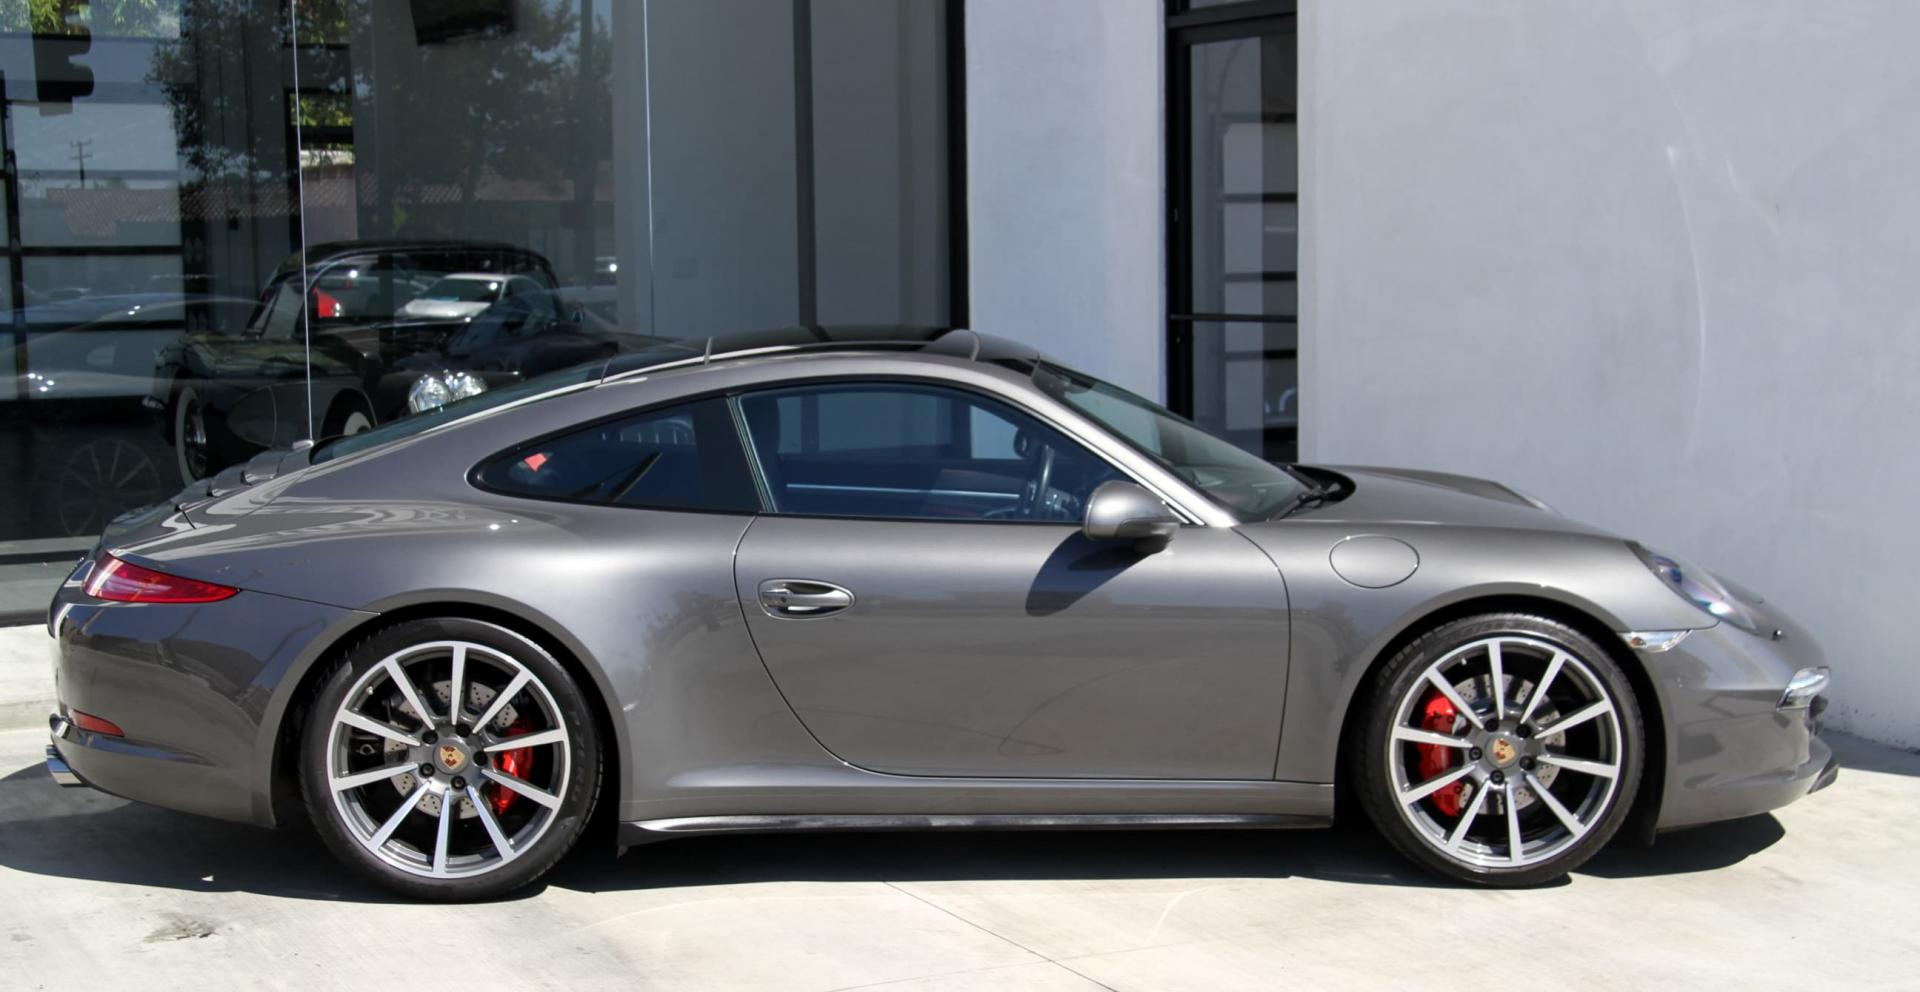 2014 Porsche 911 Carrera 4s Stock 6015 For Sale Near Redondo Beach Ca Ca Porsche Dealer